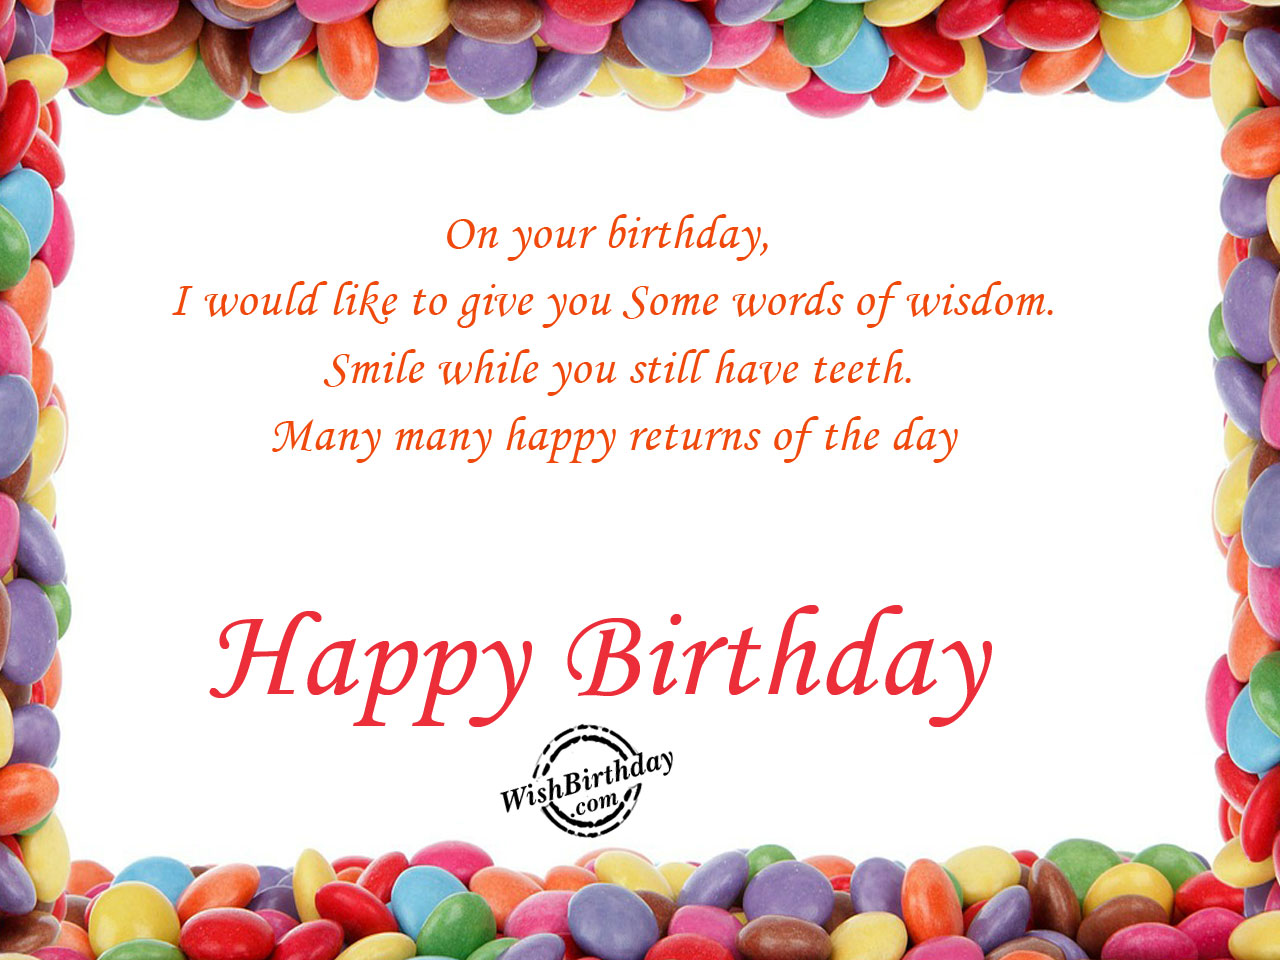 Many Many Happy Returns Of The Day Wishbirthday Com Wish You Many Many Happy Birthday